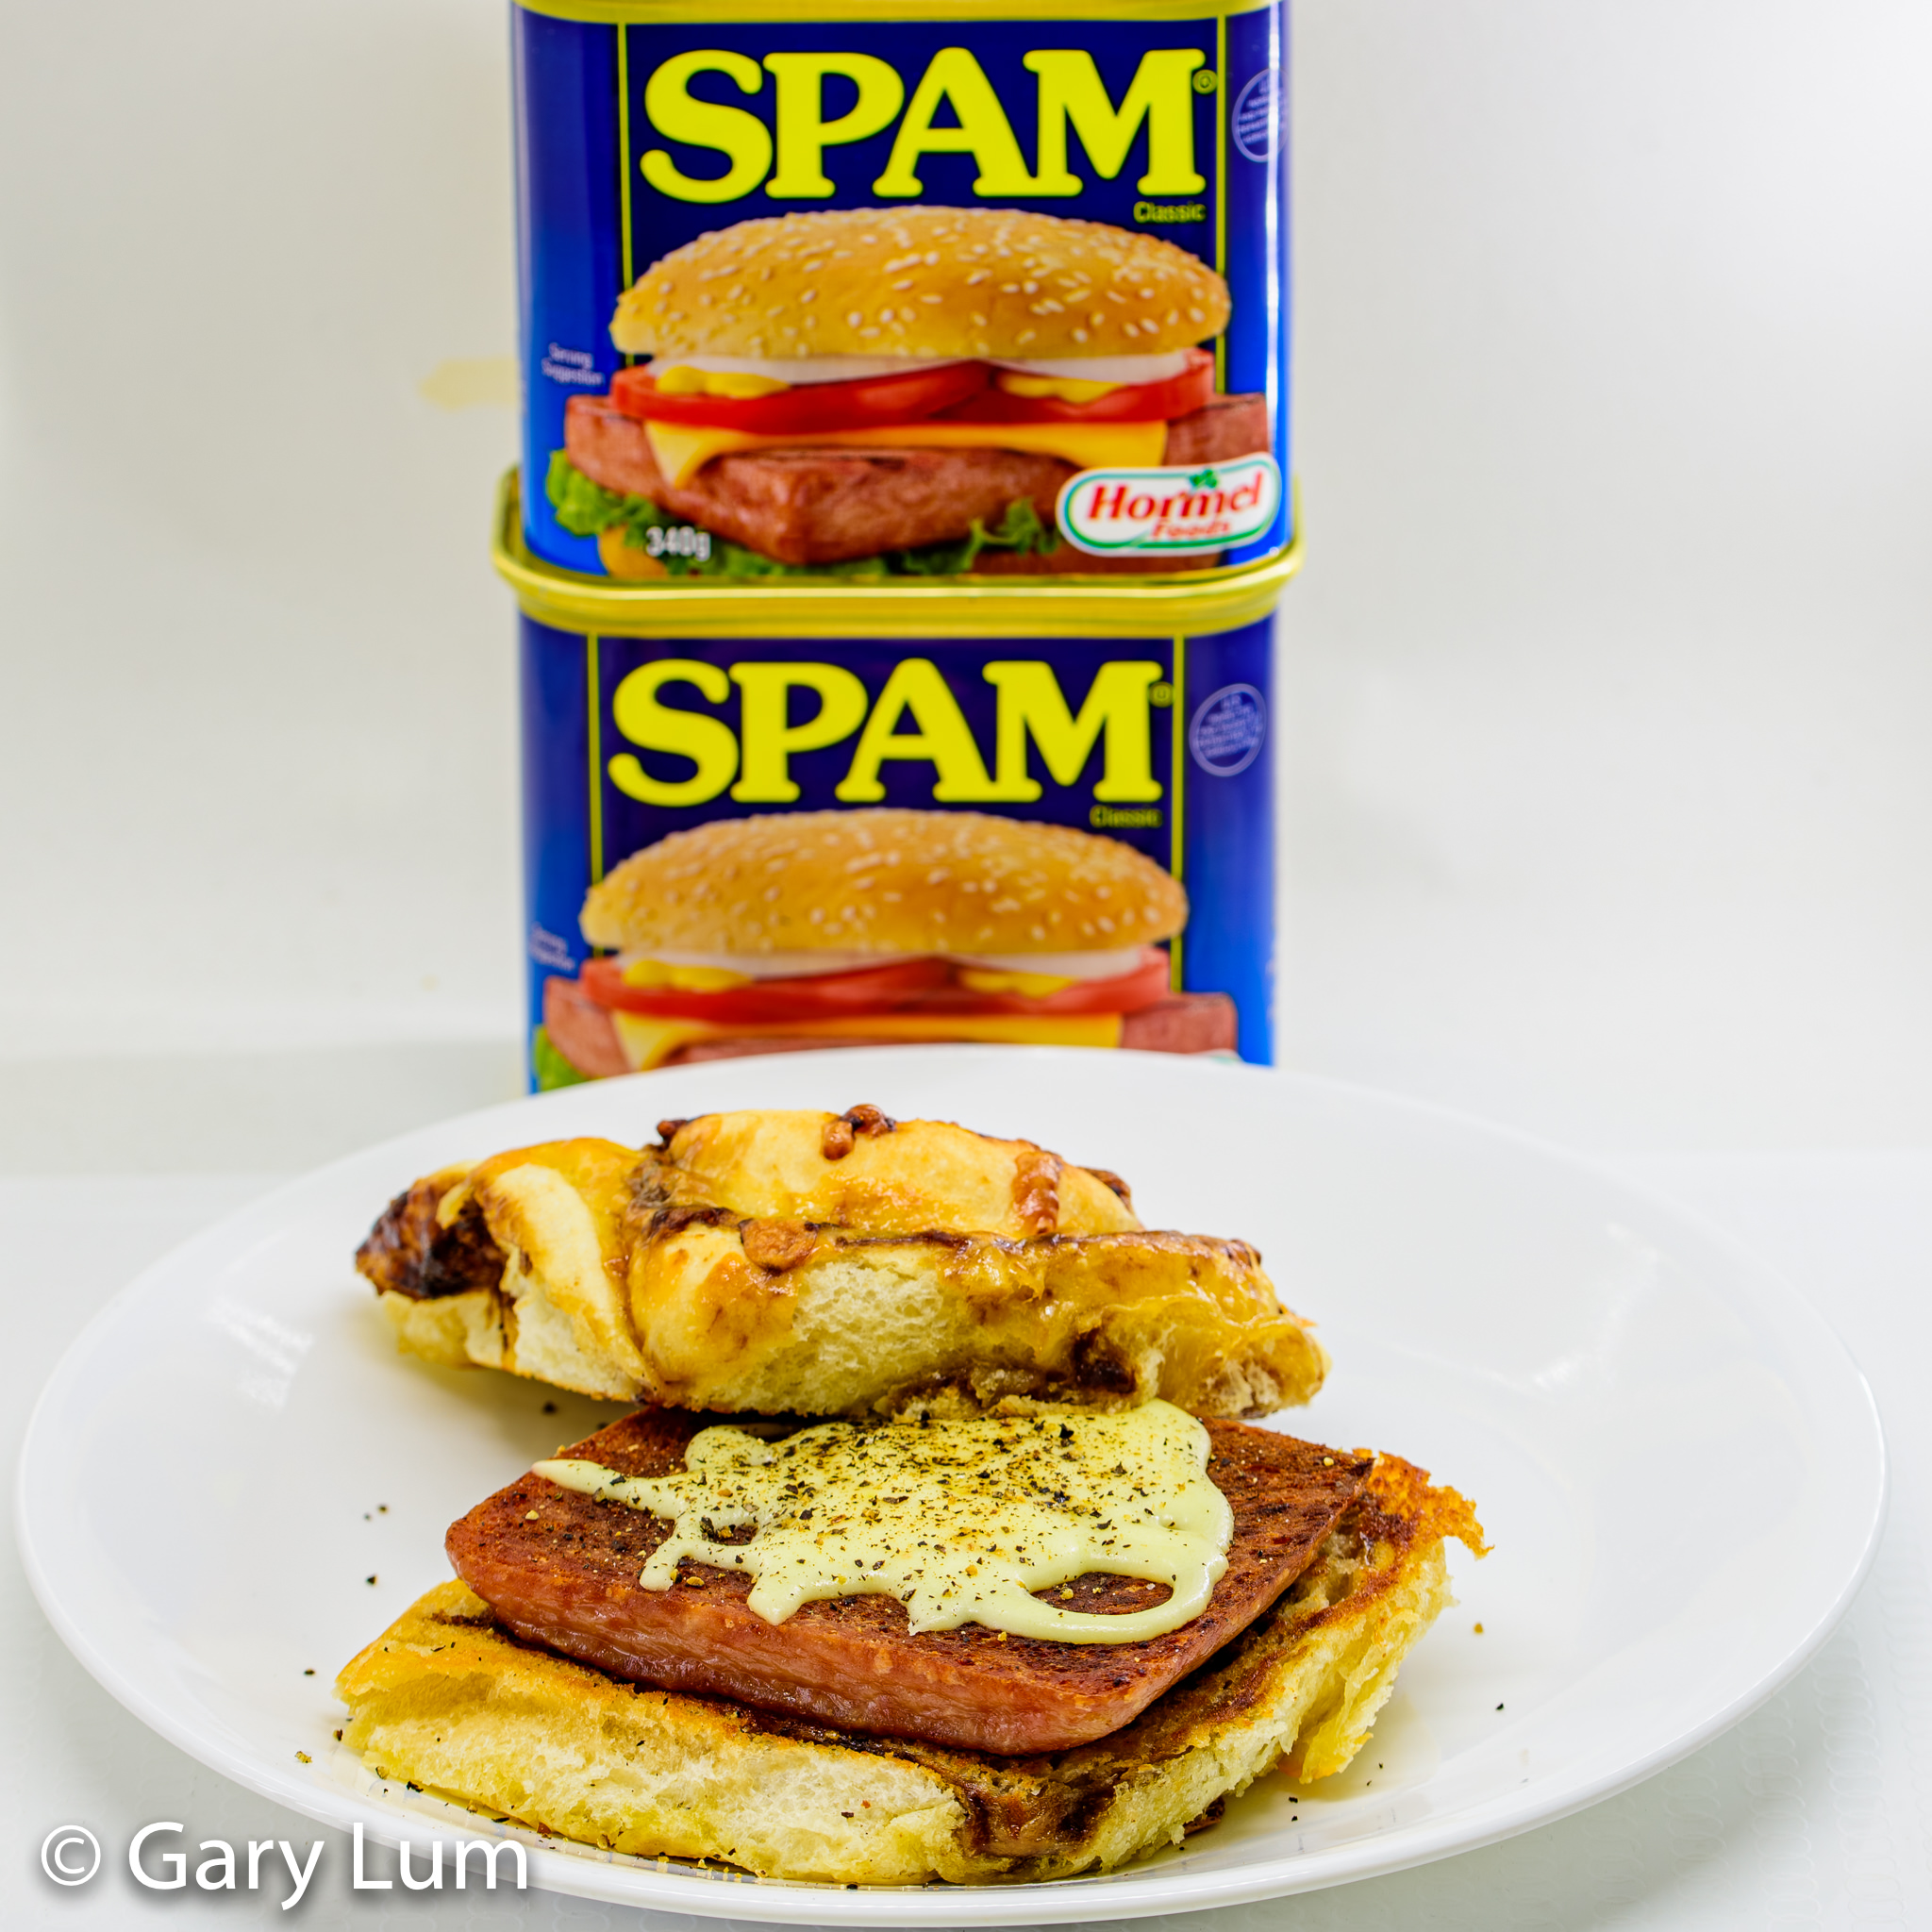 Pan-fried Spam with melted Mozzarella on a Coles Cheesy Vegemite Scroll. Gary Lum.